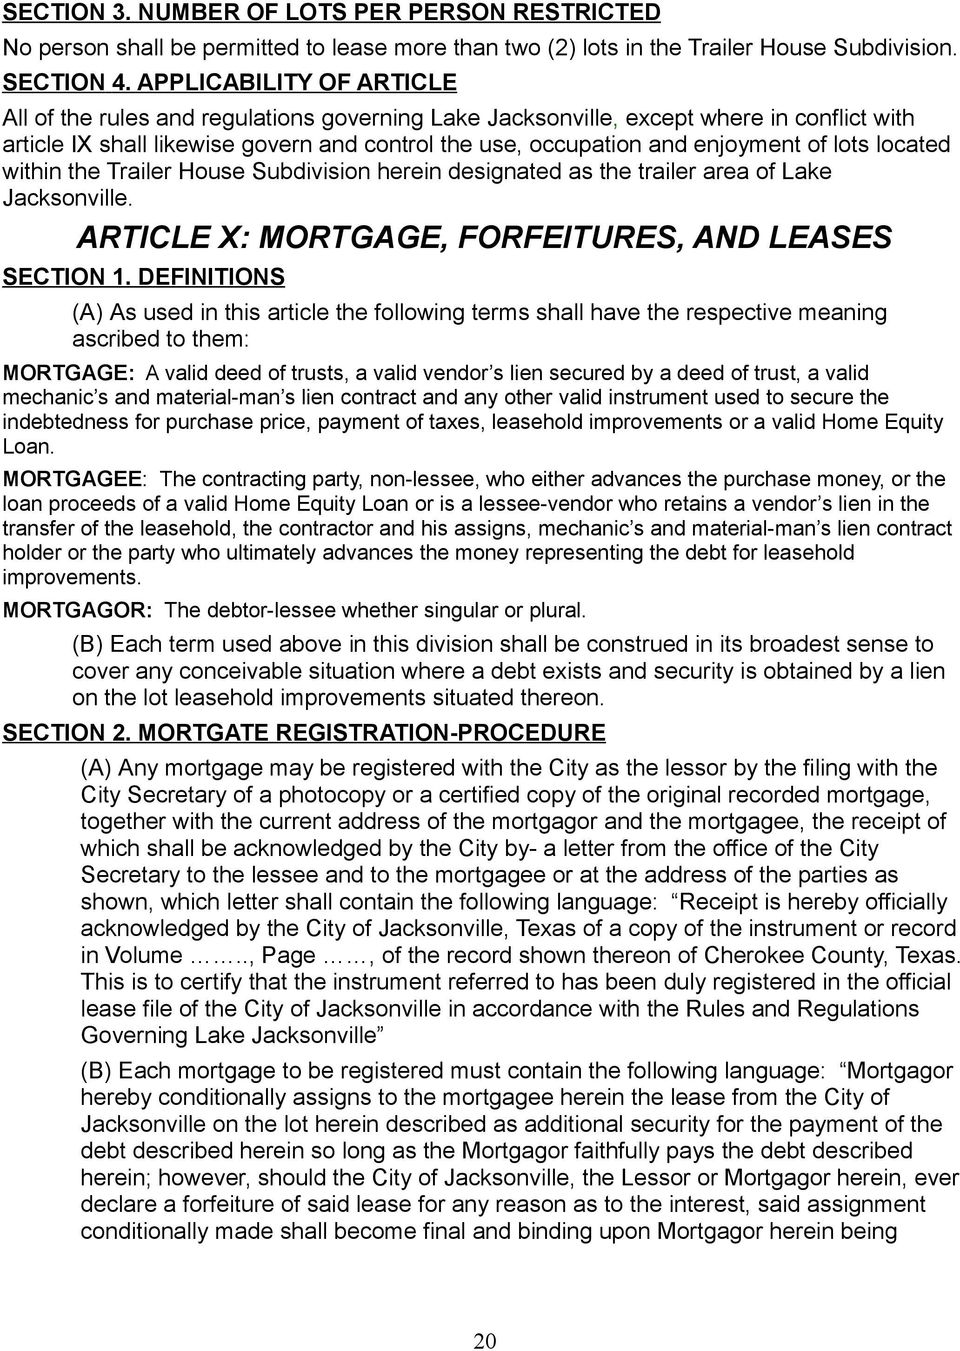 lots located within the Trailer House Subdivision herein designated as the trailer area of Lake Jacksonville. ARTICLE X: MORTGAGE, FORFEITURES, AND LEASES SECTION 1.